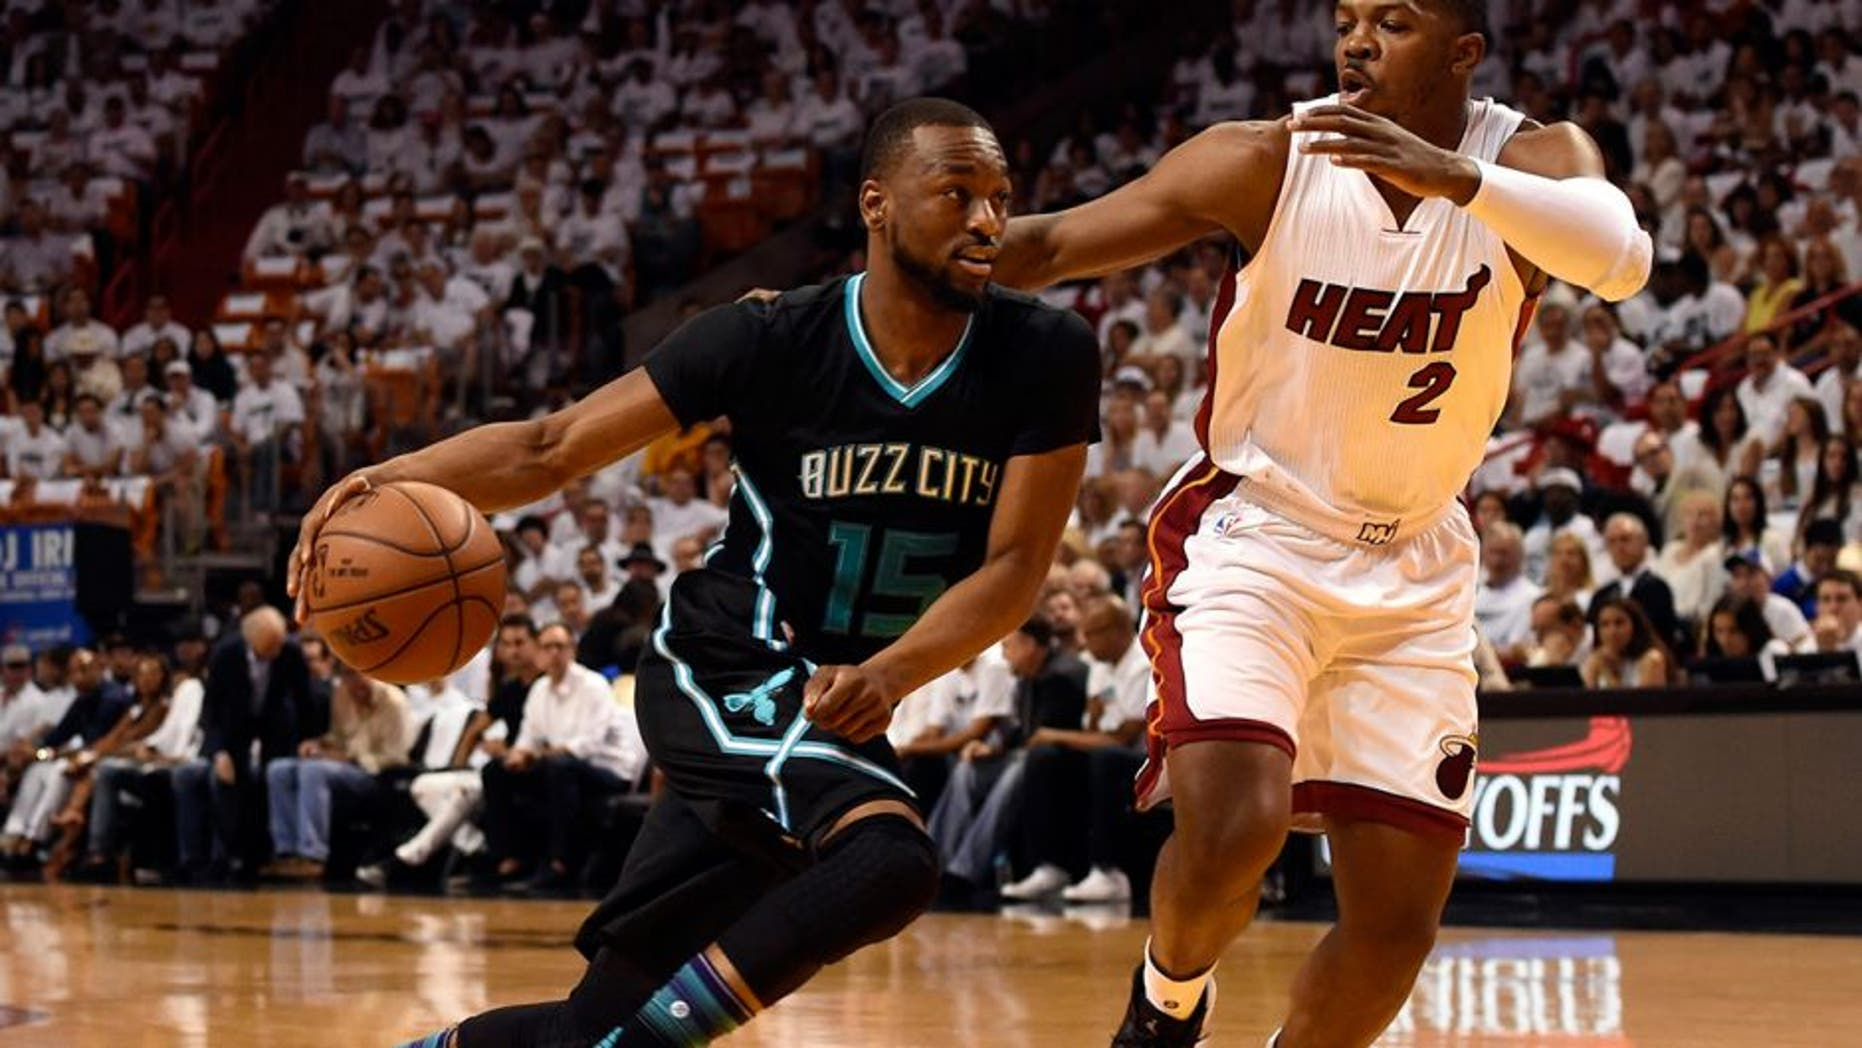 May 1, 2016; Miami, FL, USA; Charlotte Hornets guard Kemba Walker (15) drives to the basket as Miami Heat forward Joe Johnson (2) defends during the first half in game seven of the first round of the NBA Playoffs at American Airlines Arena. Mandatory Credit: Steve Mitchell-USA TODAY Sports